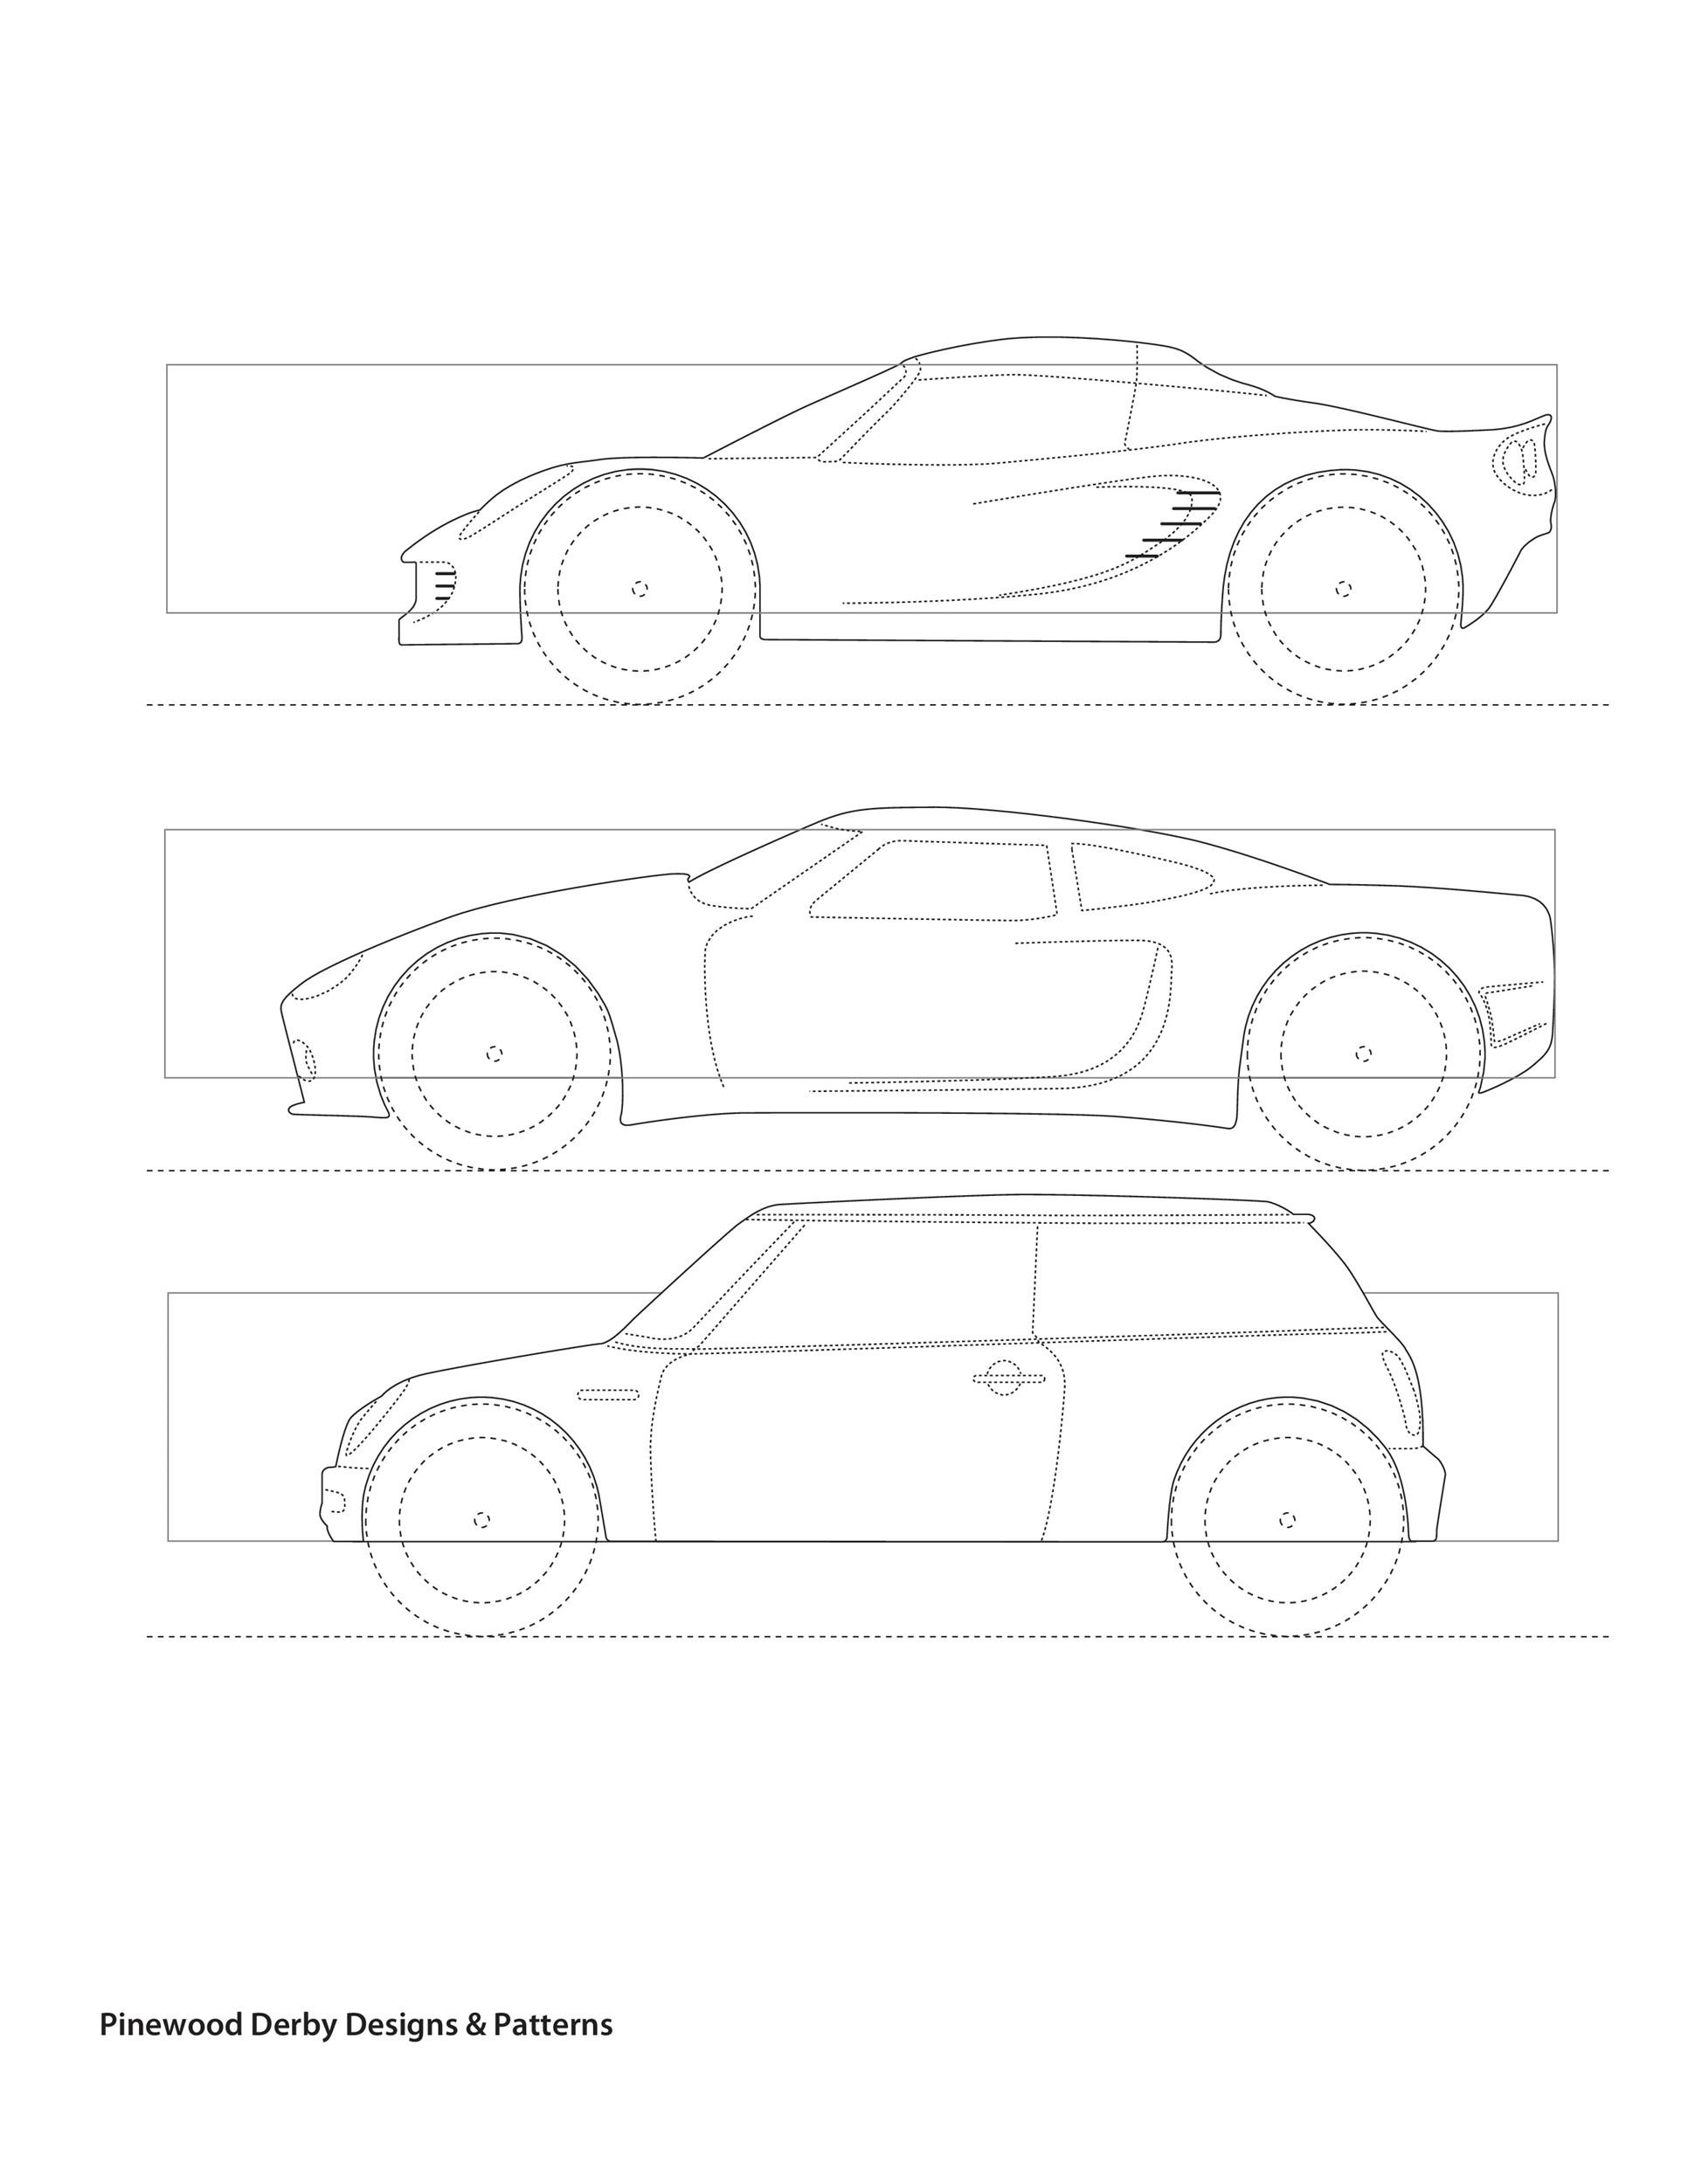 graphic regarding Printable Pinewood Derby Car Templates identify 39 Incredible Pinewood Derby Car or truck Styles Templates ᐅ